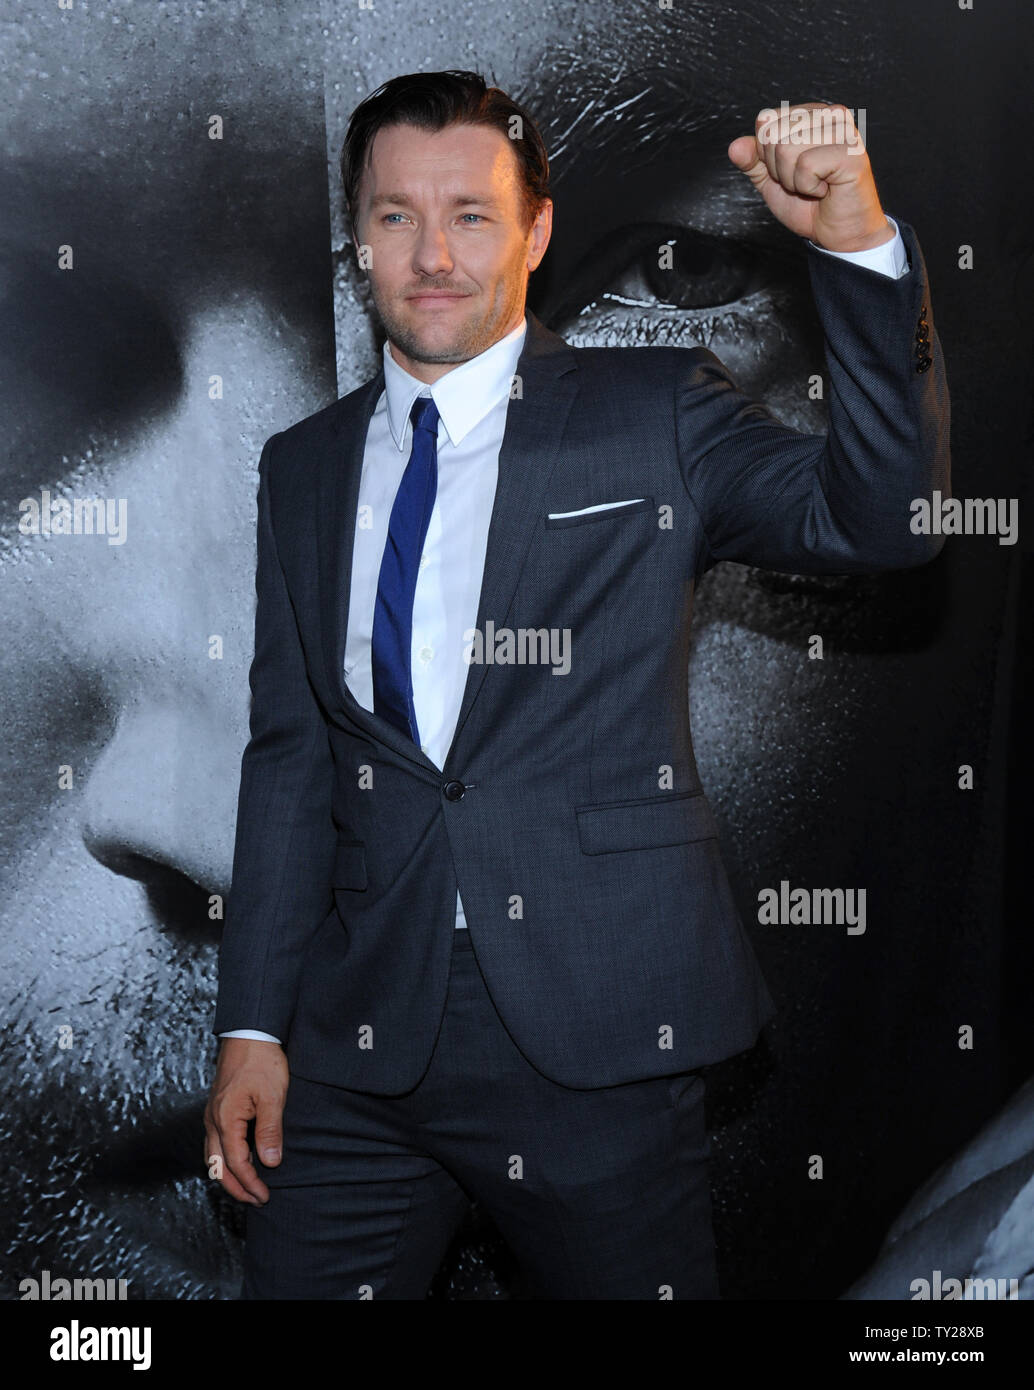 Actor Joel Edgerton, a cast member in the motion picture